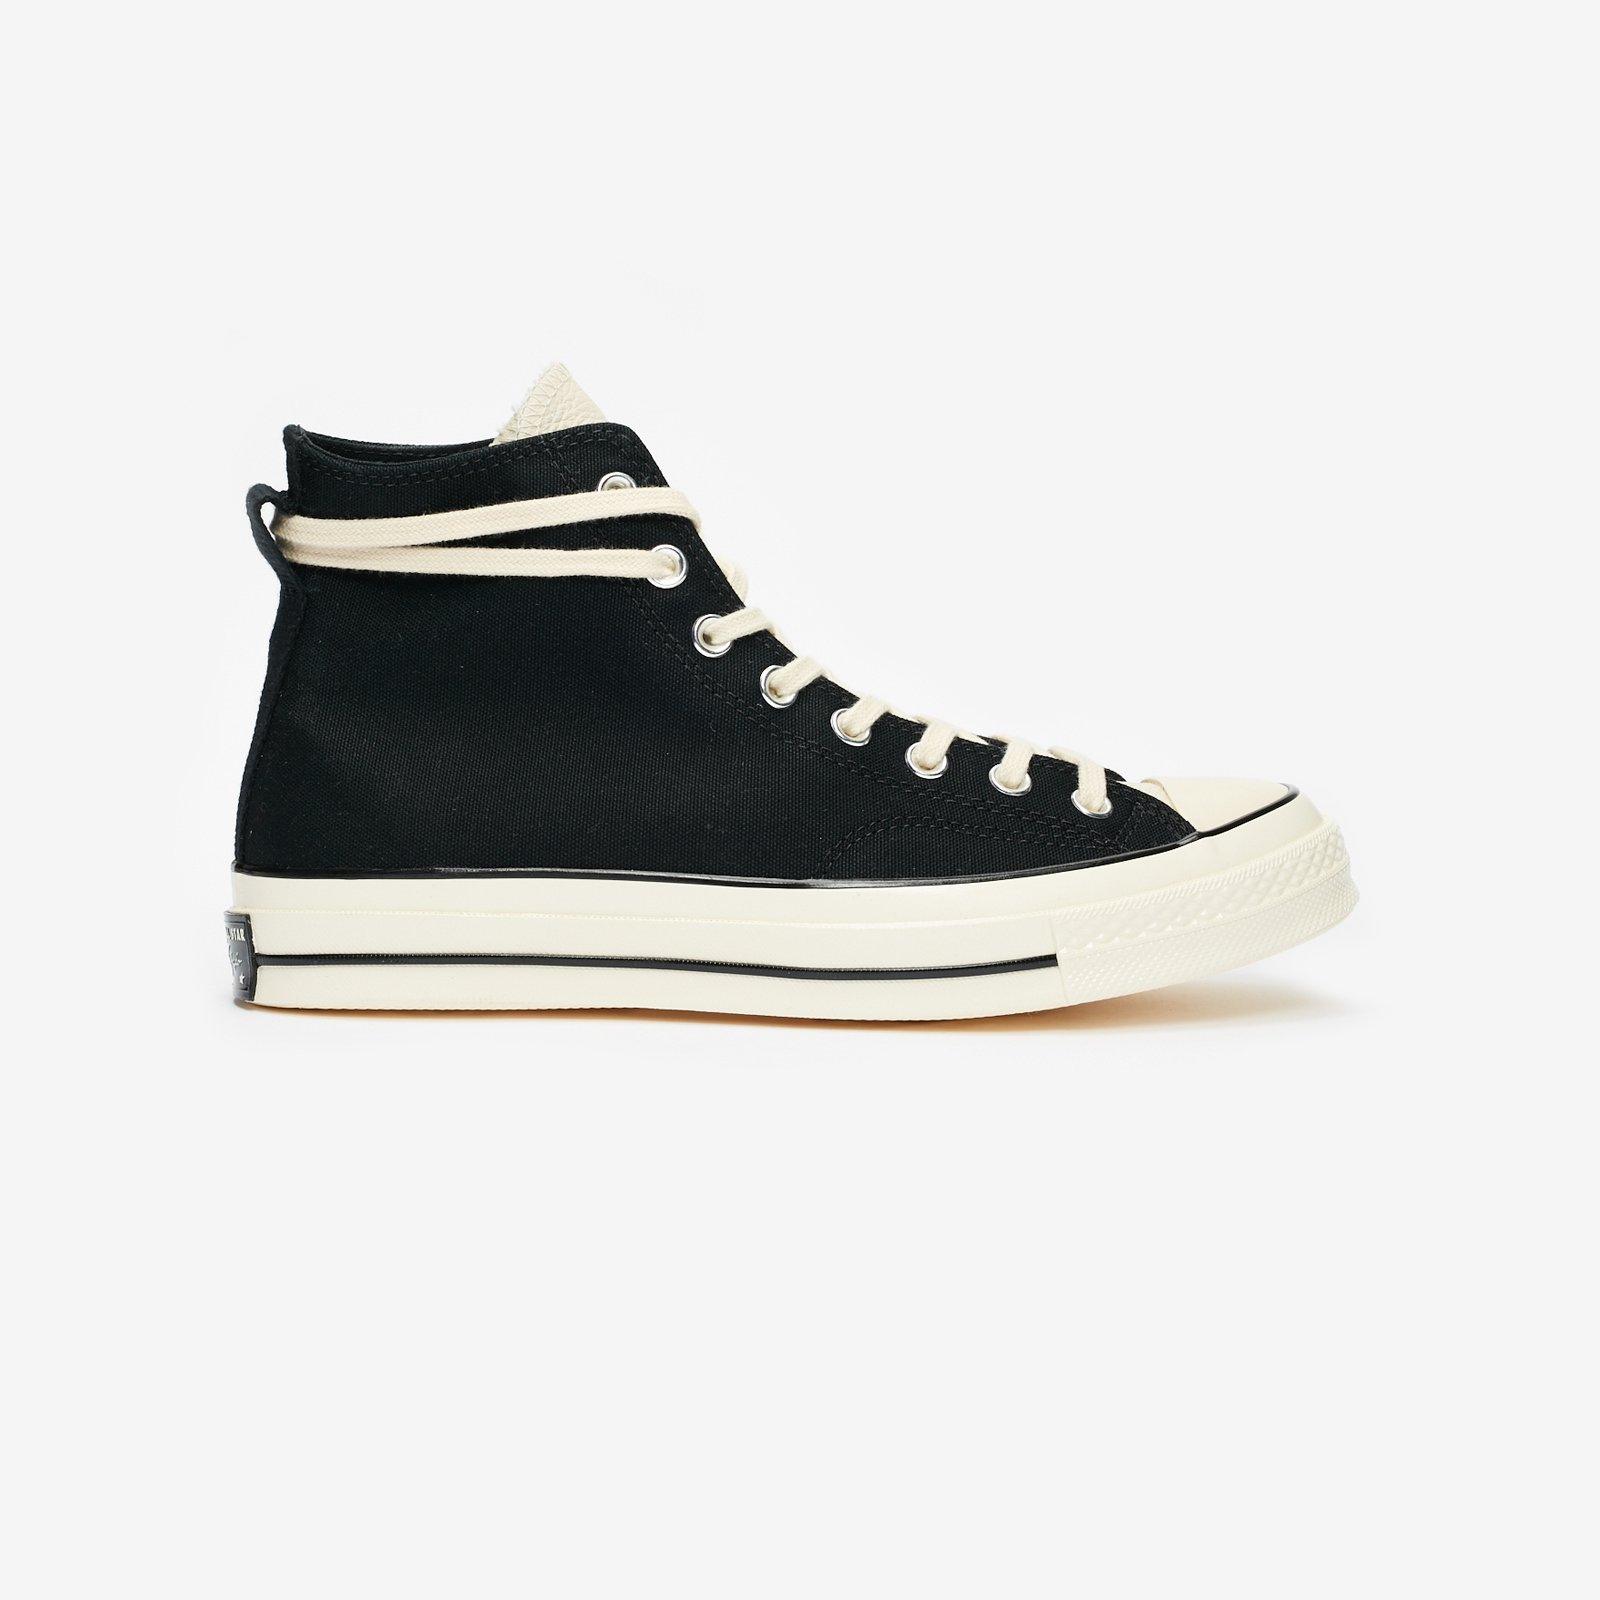 fear-of-god-fog-essentials-converse-chuck-70-black-ivory-release-20200326